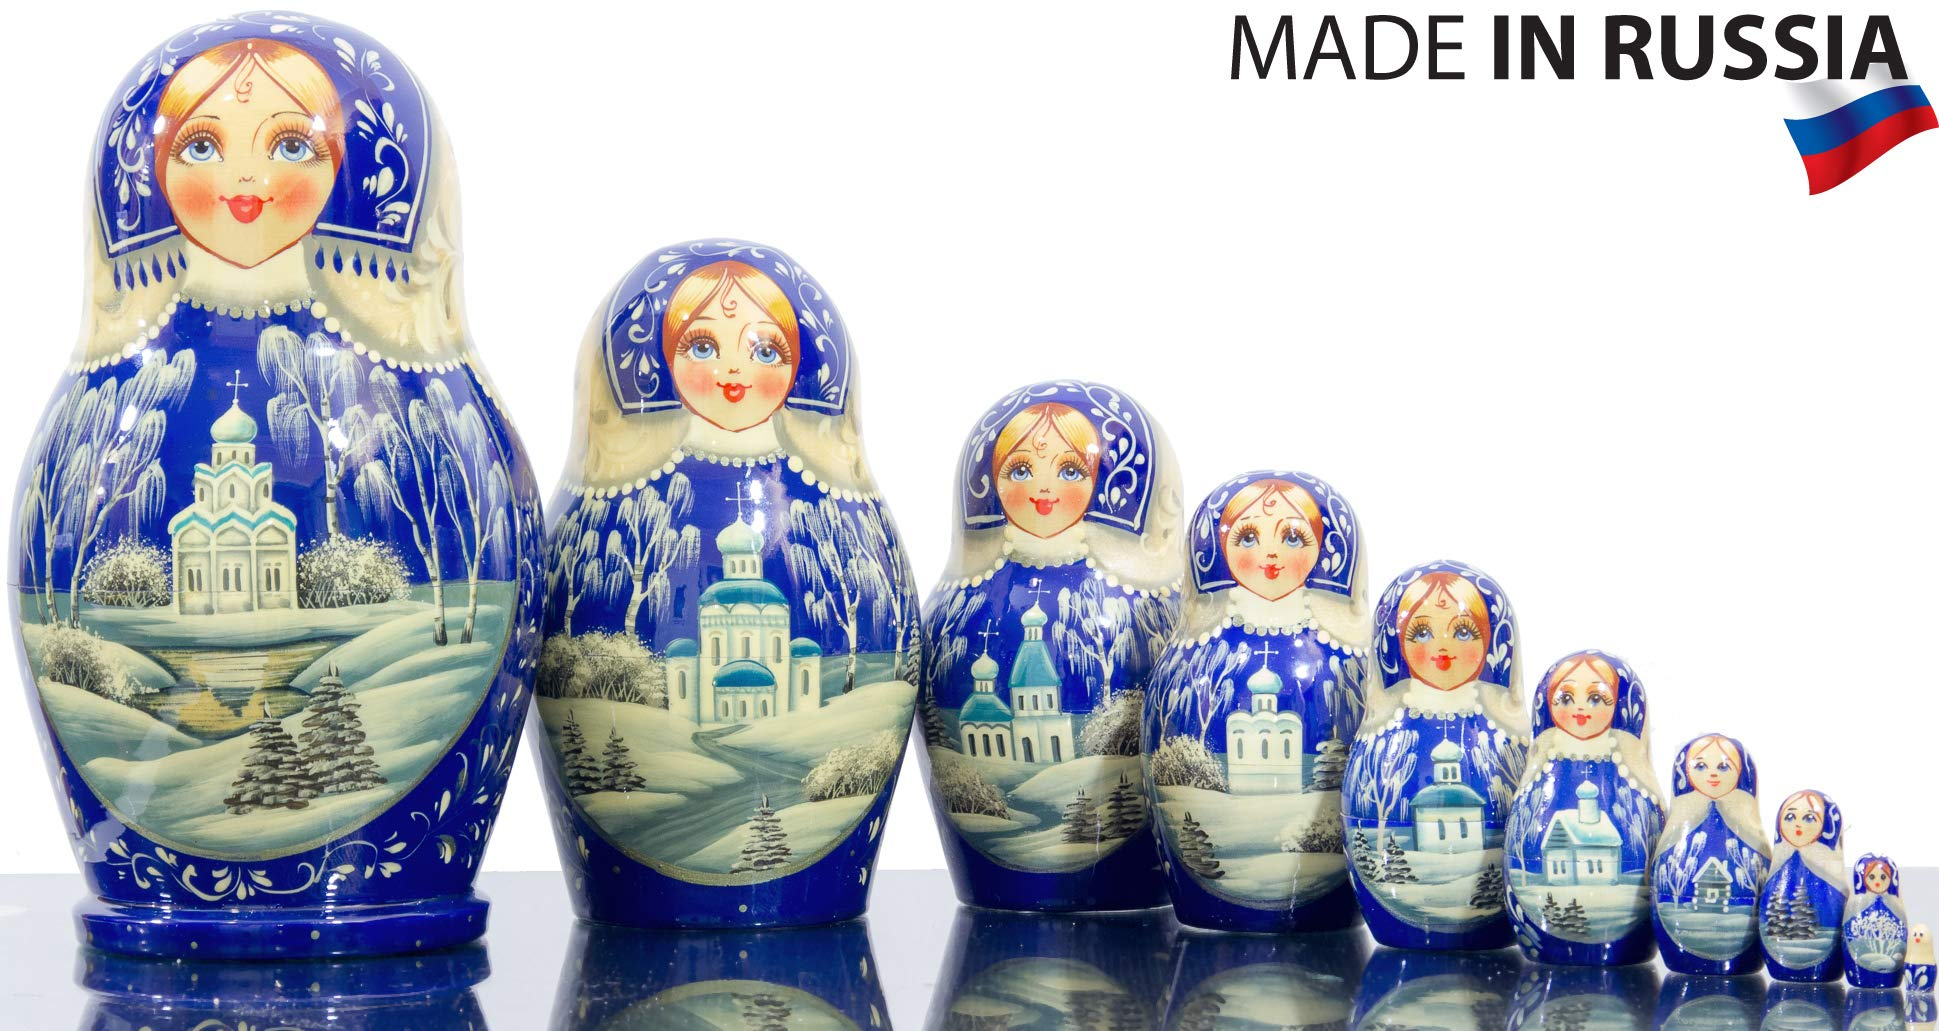 Russian Nesting Doll - Kirov - VJATKA - Hand Painted in Russia - Big Size - Wooden Decoration Gift Doll - Matryoshka Babushka (Style E, 8.25``(10 Dolls in 1)) by craftsfromrussia (Image #1)